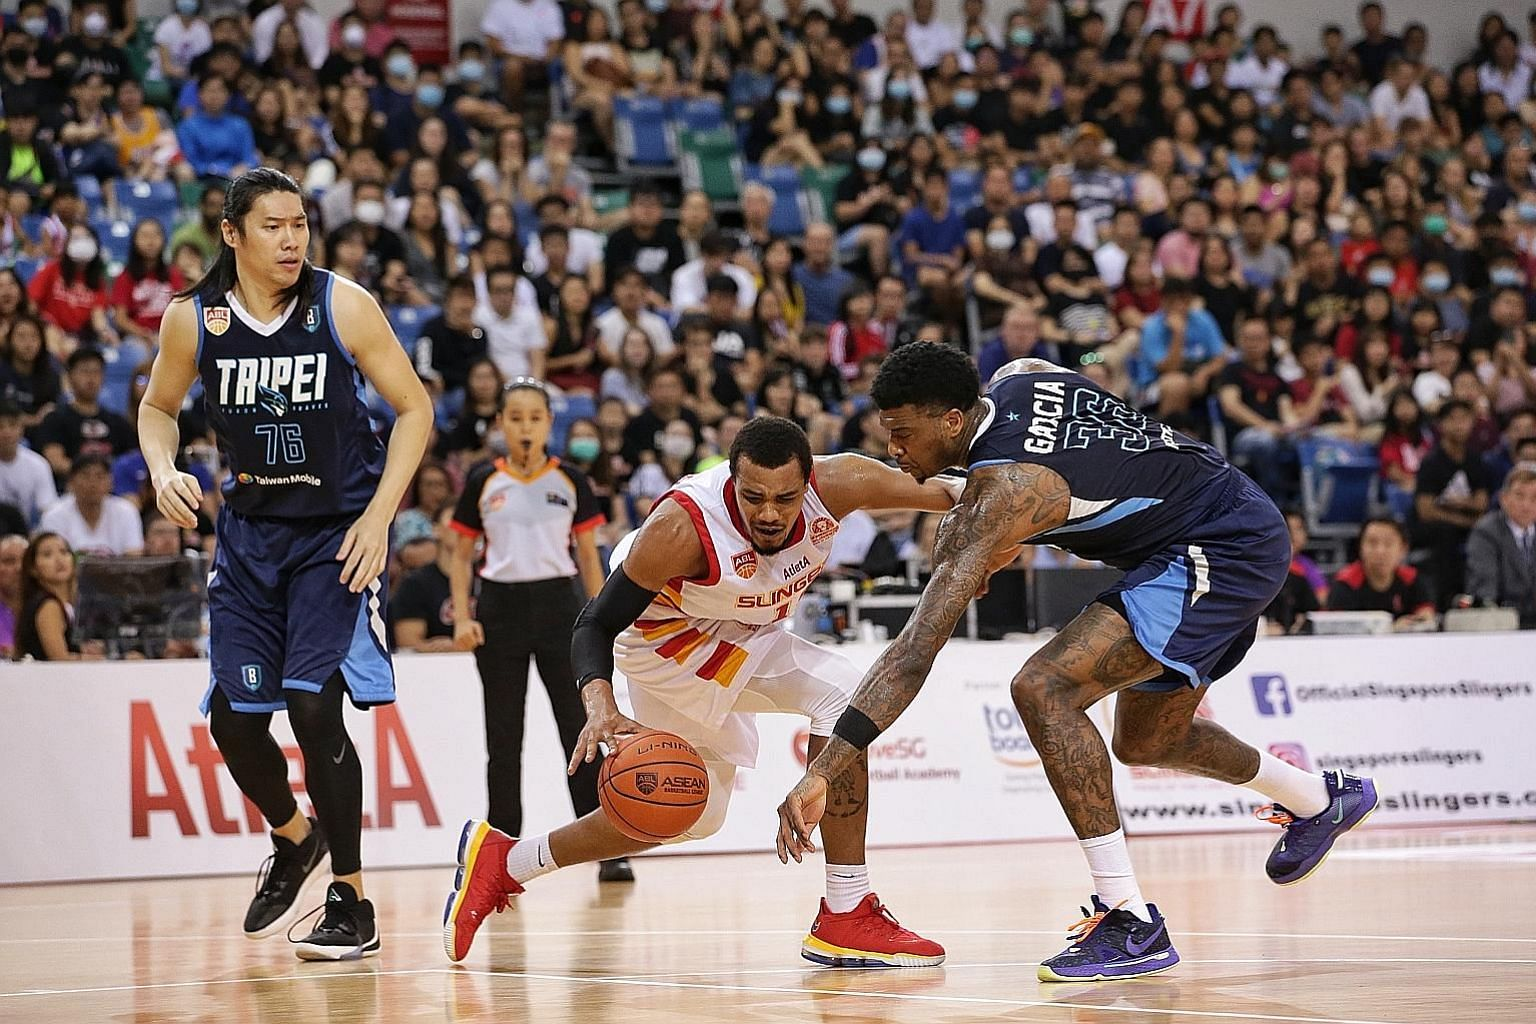 Singapore Slingers' Xavier Alexander (centre) taking on the Taipei Fubon Braves in February. Both teams are set to compete in the Asean Basketball League when the new season resumes next year.